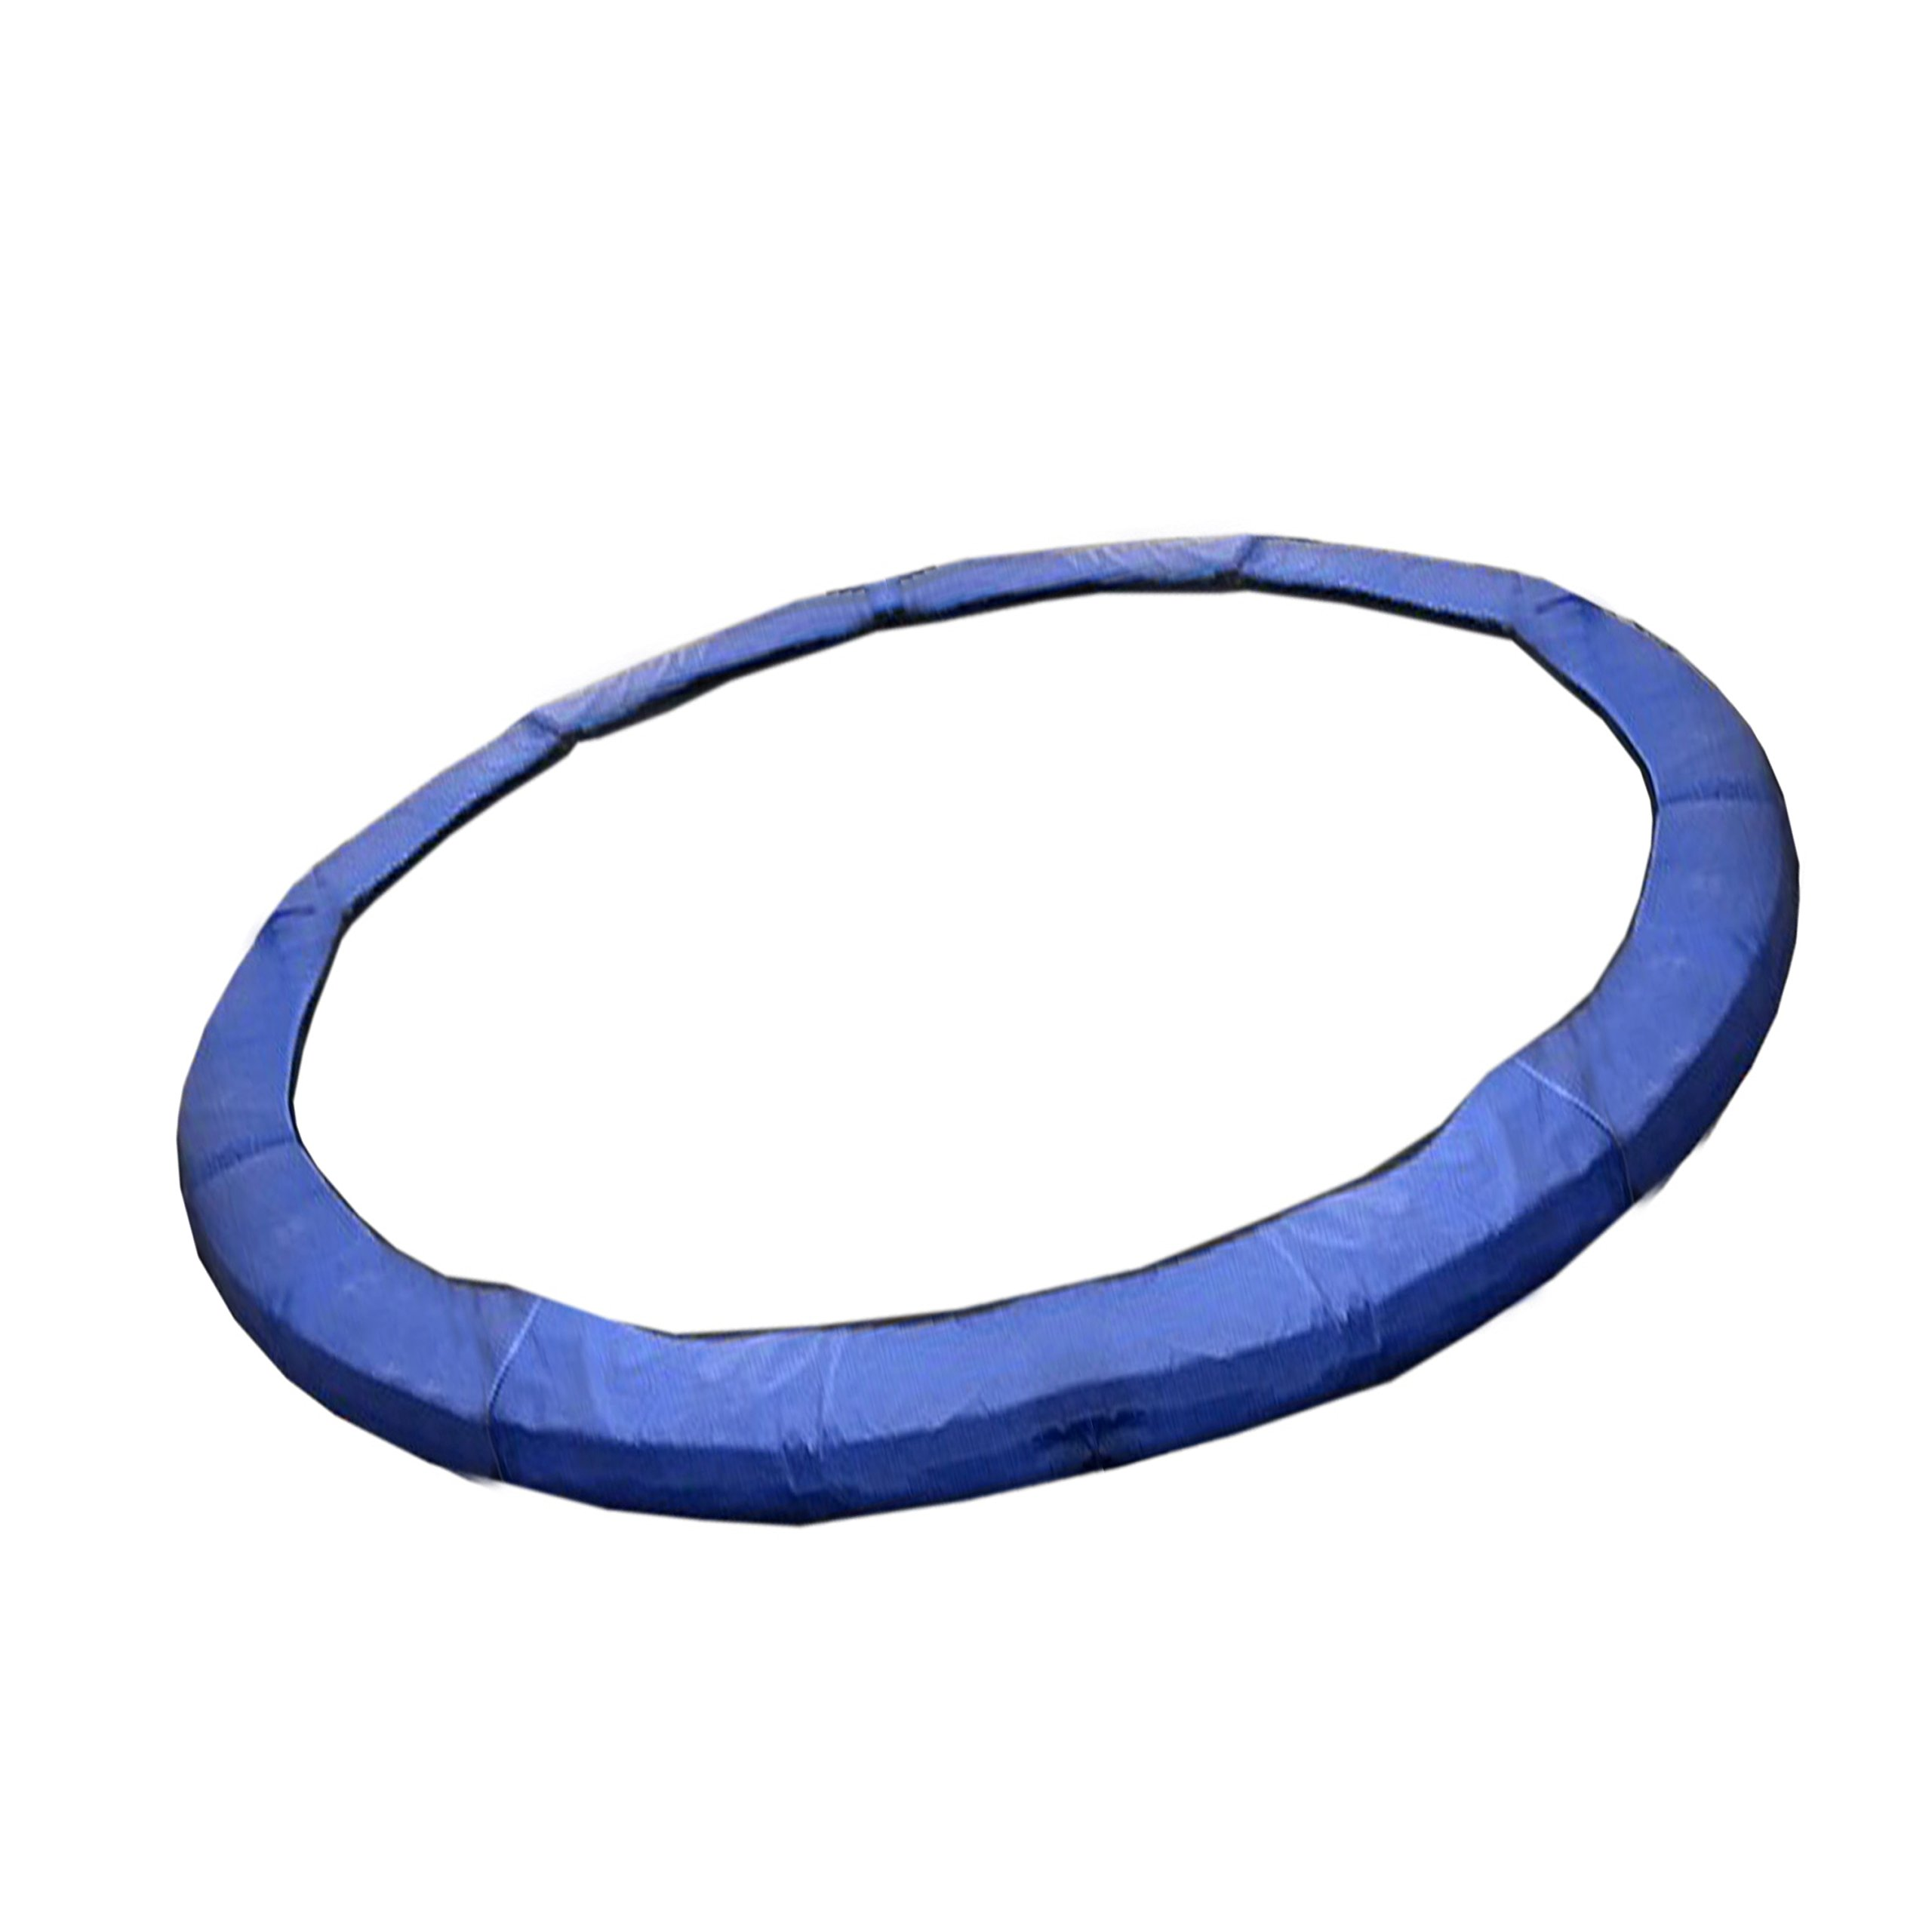 ALEKO TRP16SP Round Trampoline Safety Pad for 16 Foot Trampolines EPE Foam Safety Pad, Blue Color by ALEKO (Image #4)